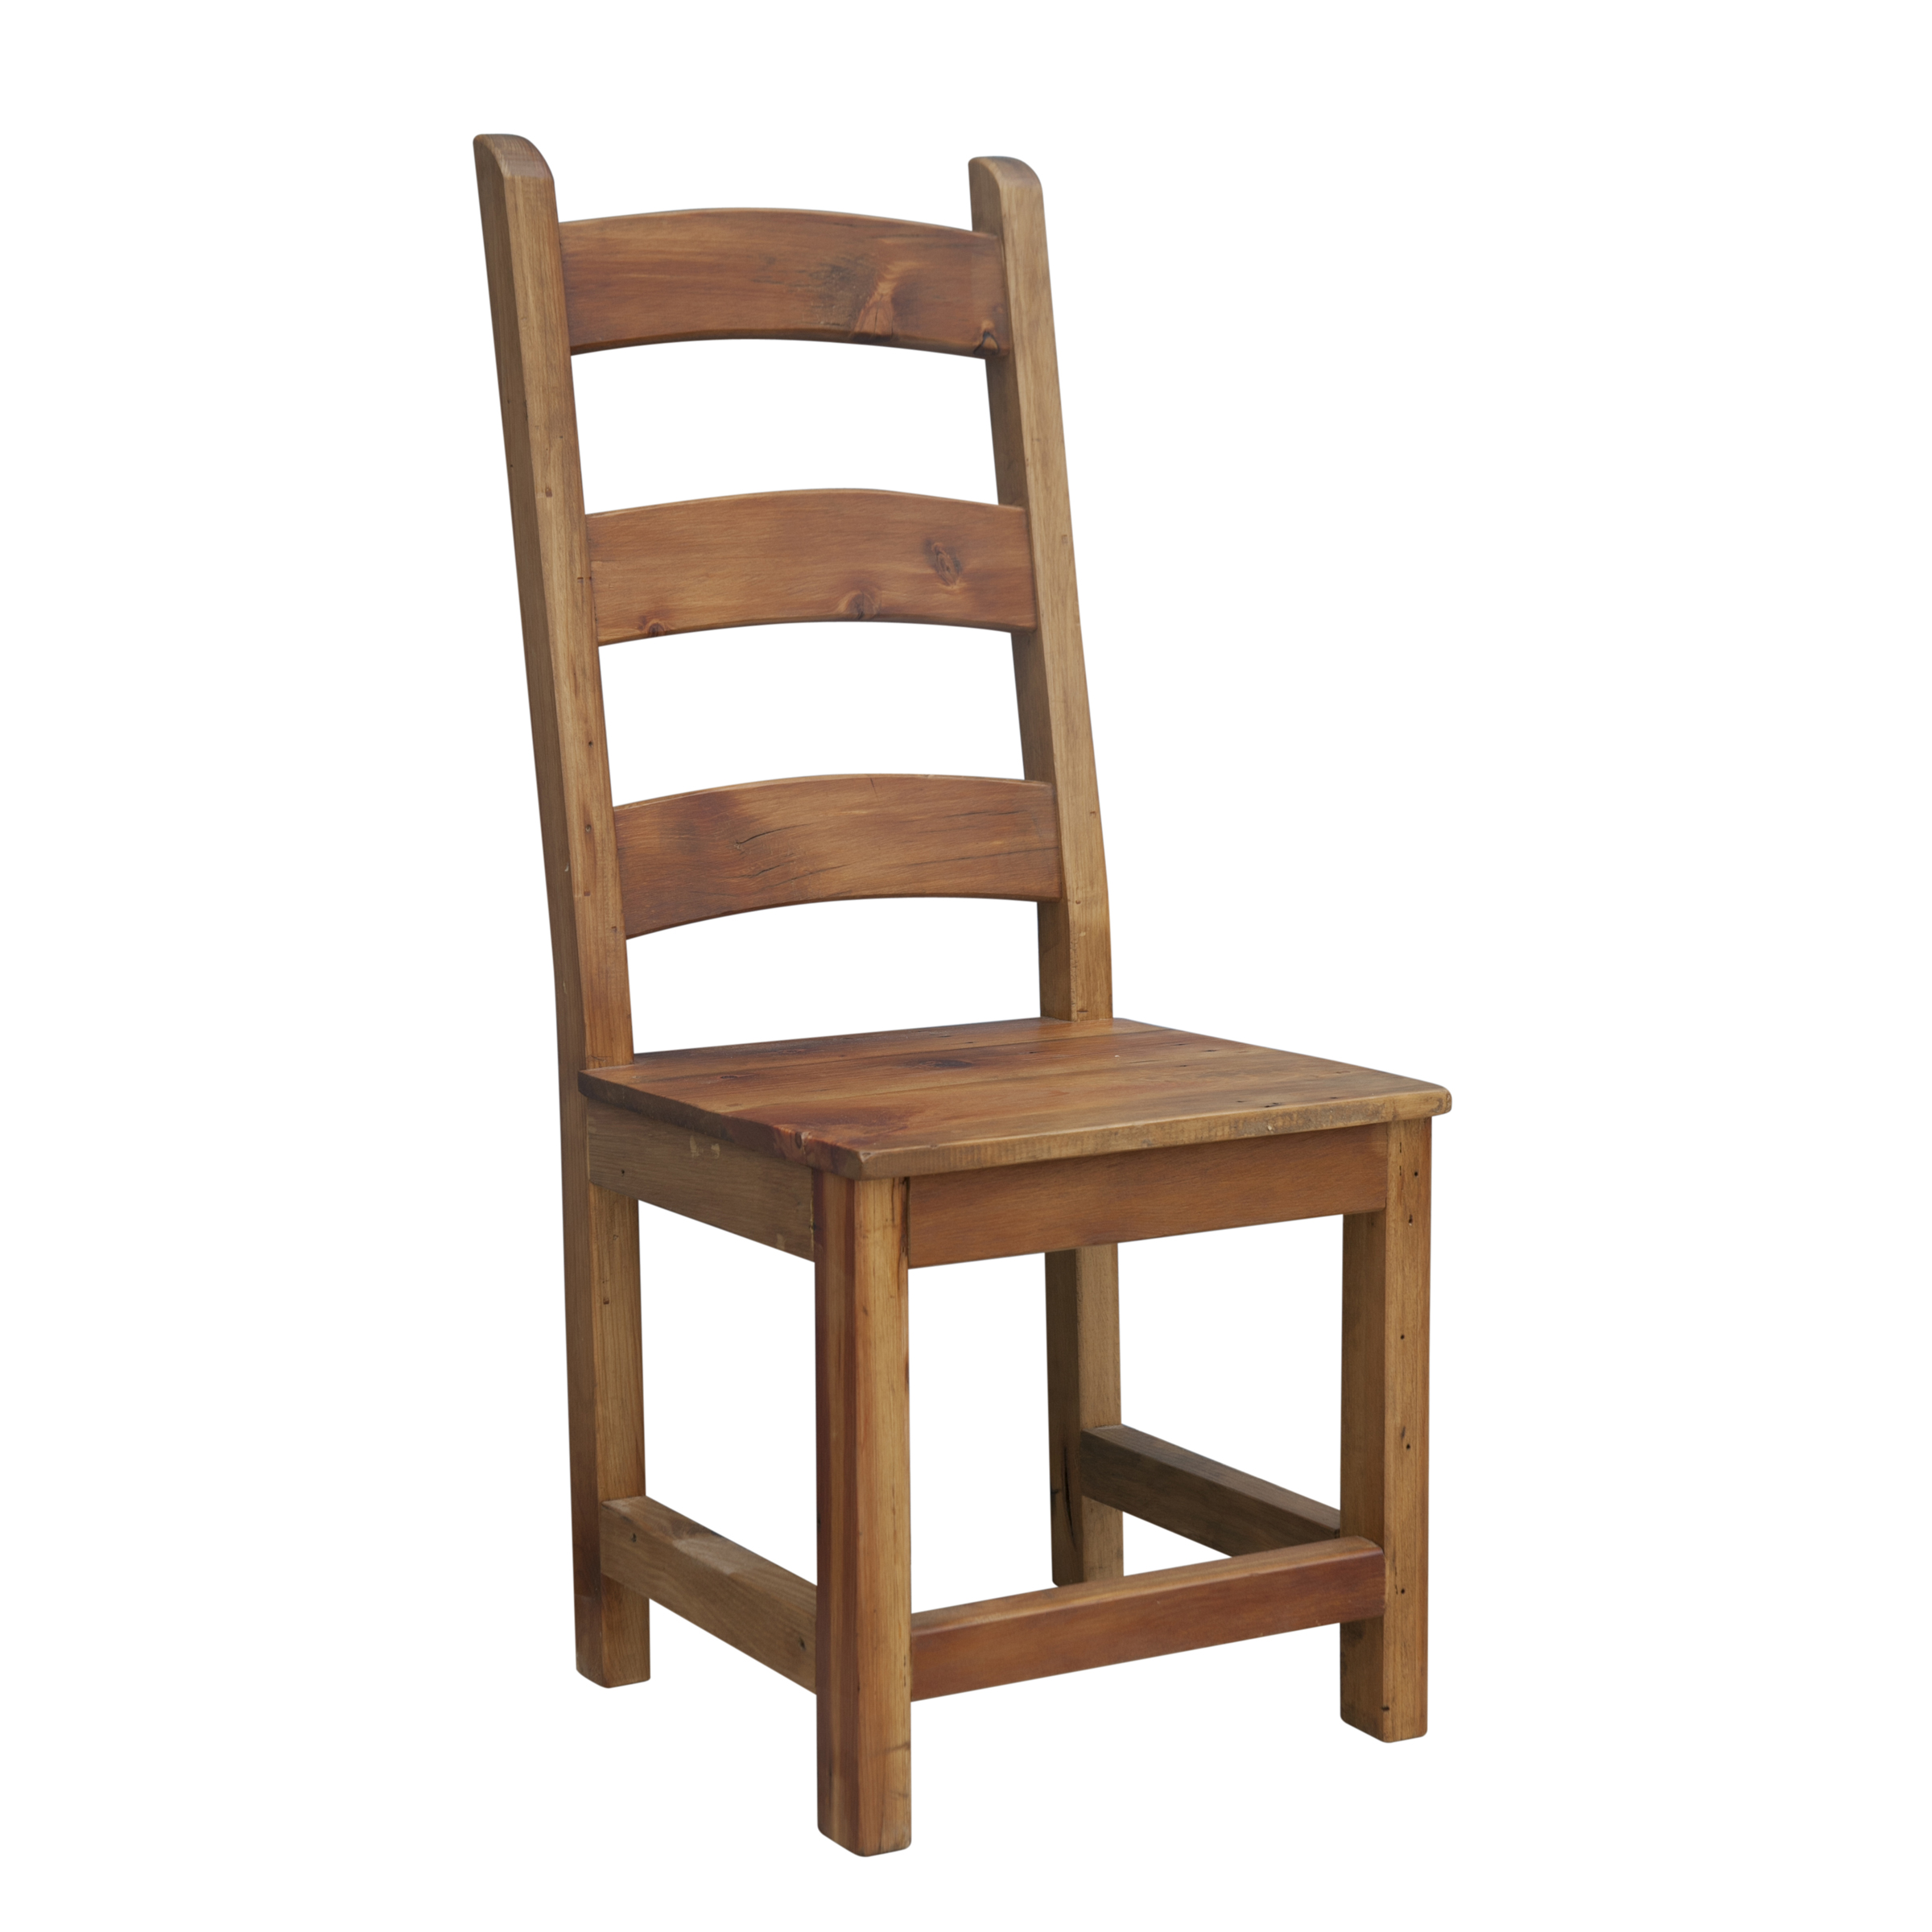 Rustic Dining Chairs Buy Harrison Rustic Dining Chair Online